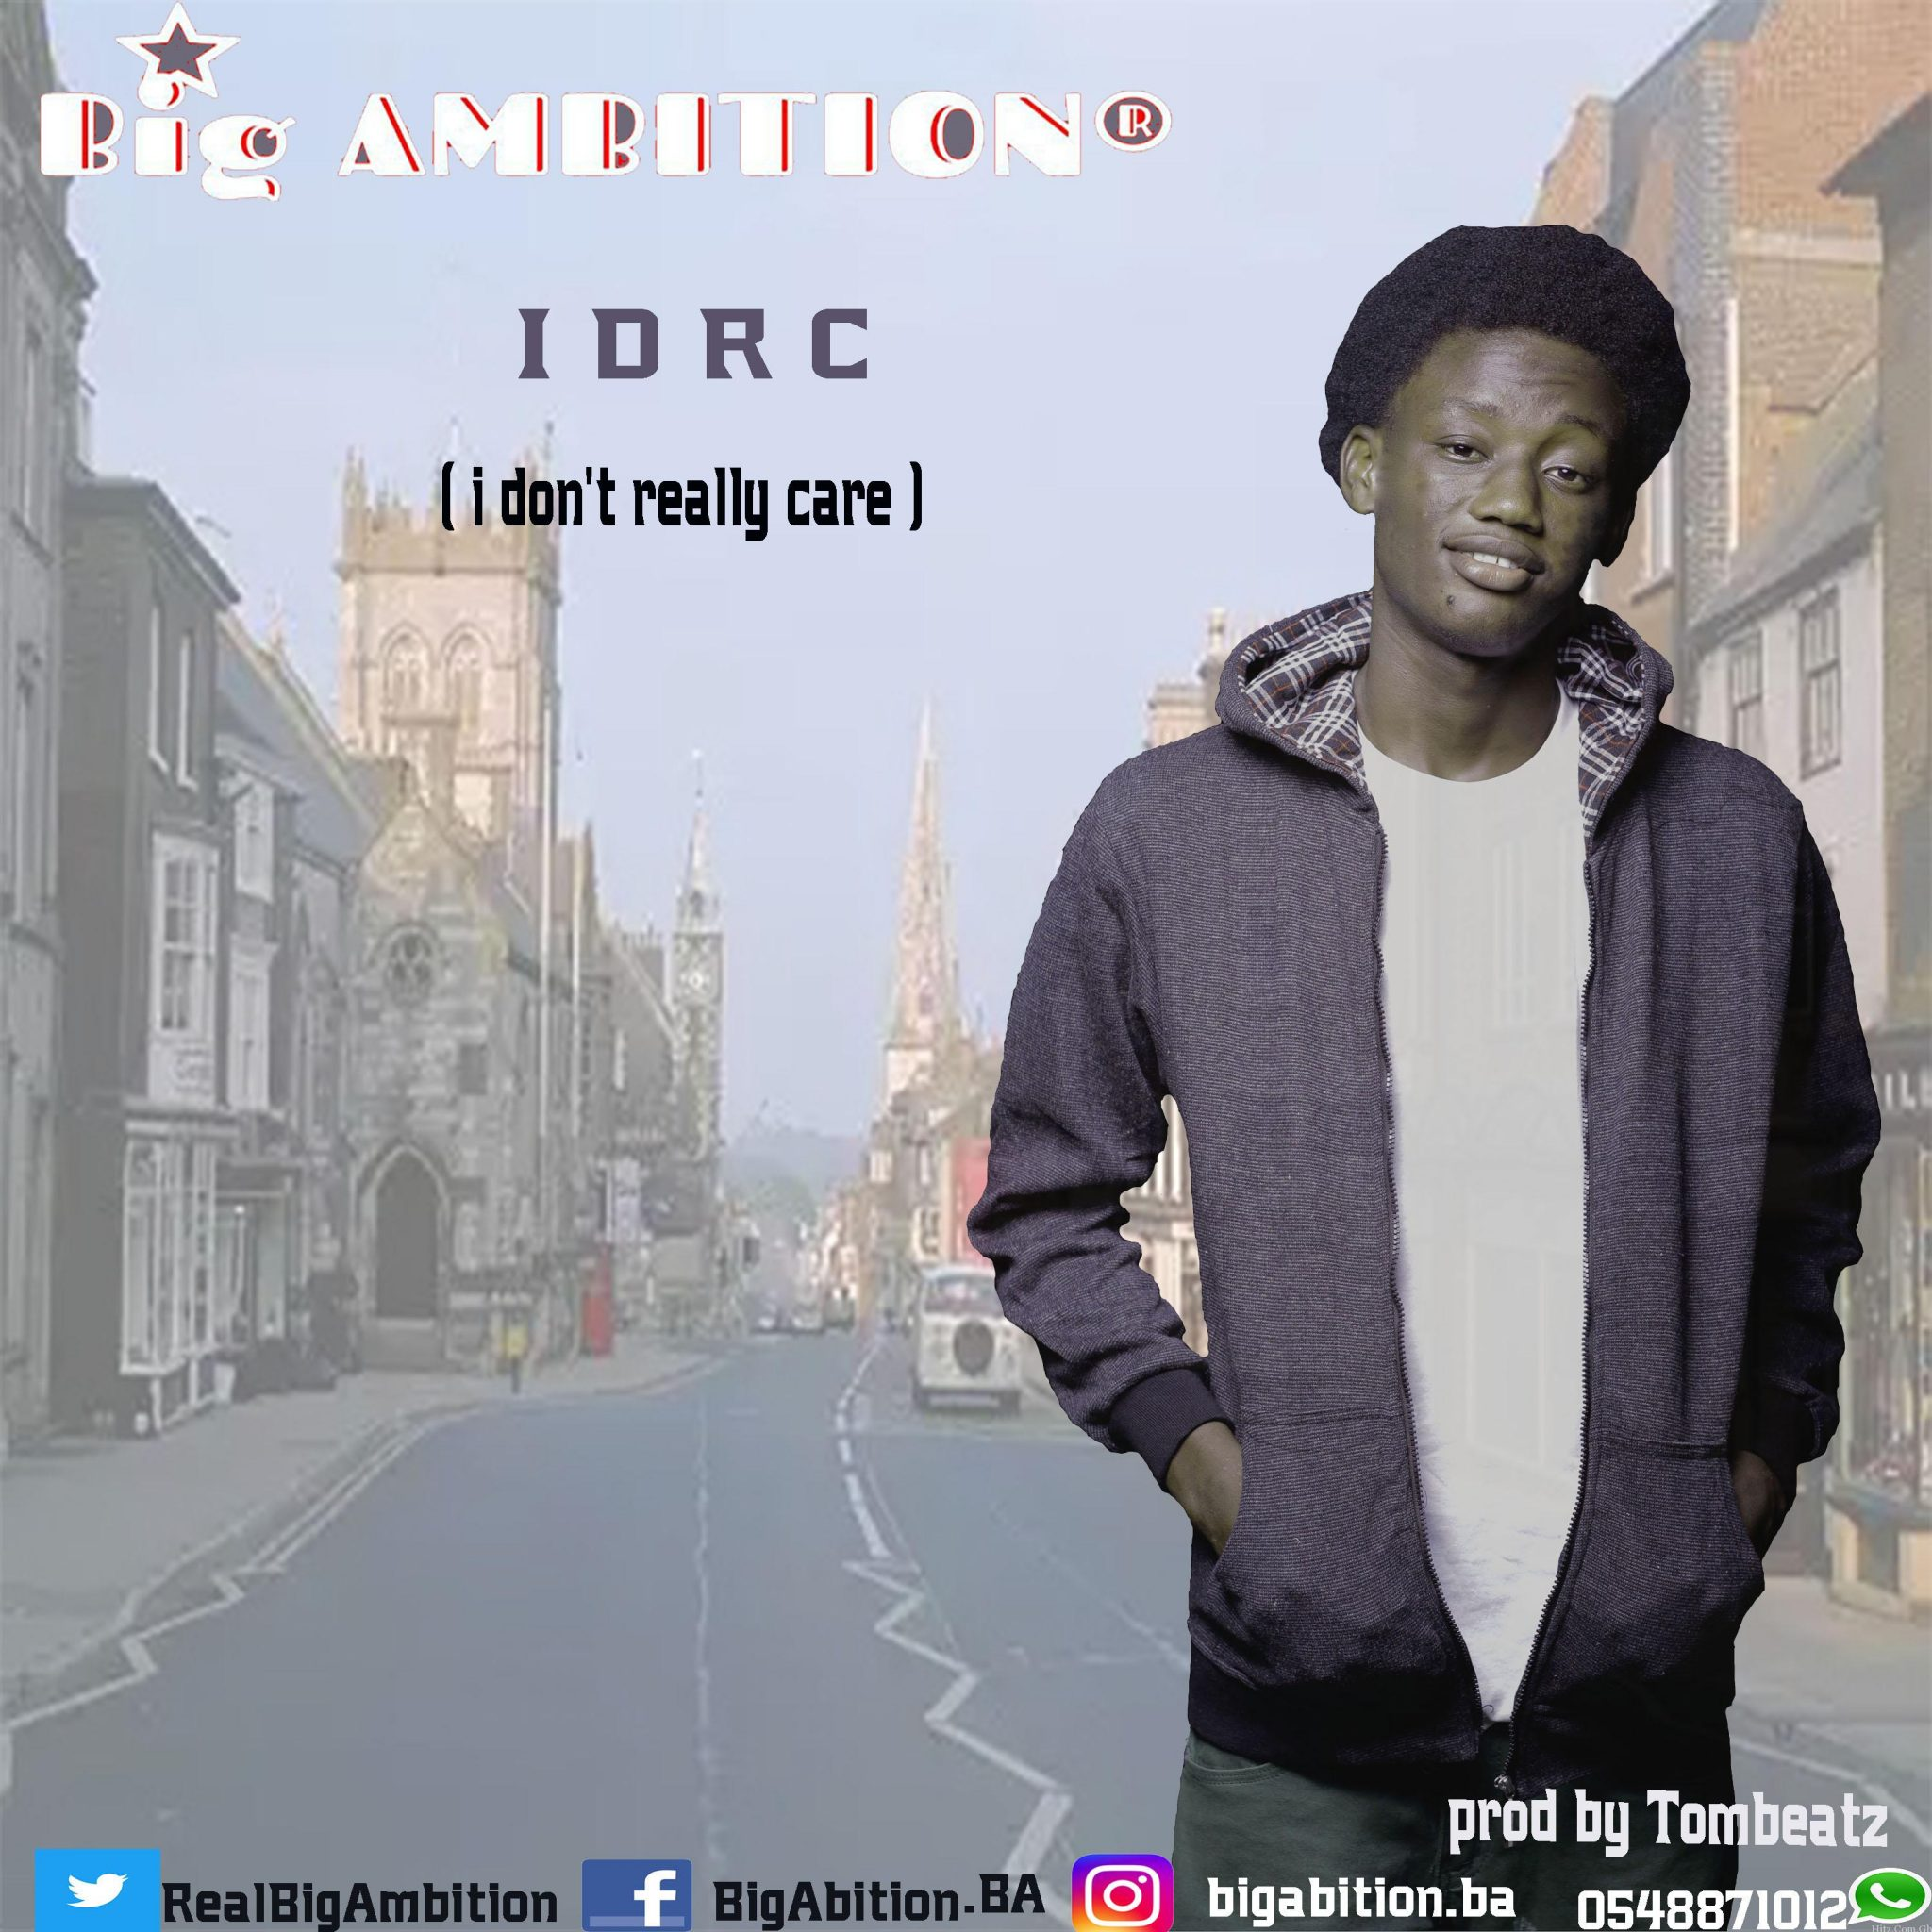 BiG Ambition I Dont Really Care IDRC Prod by Tombeatz